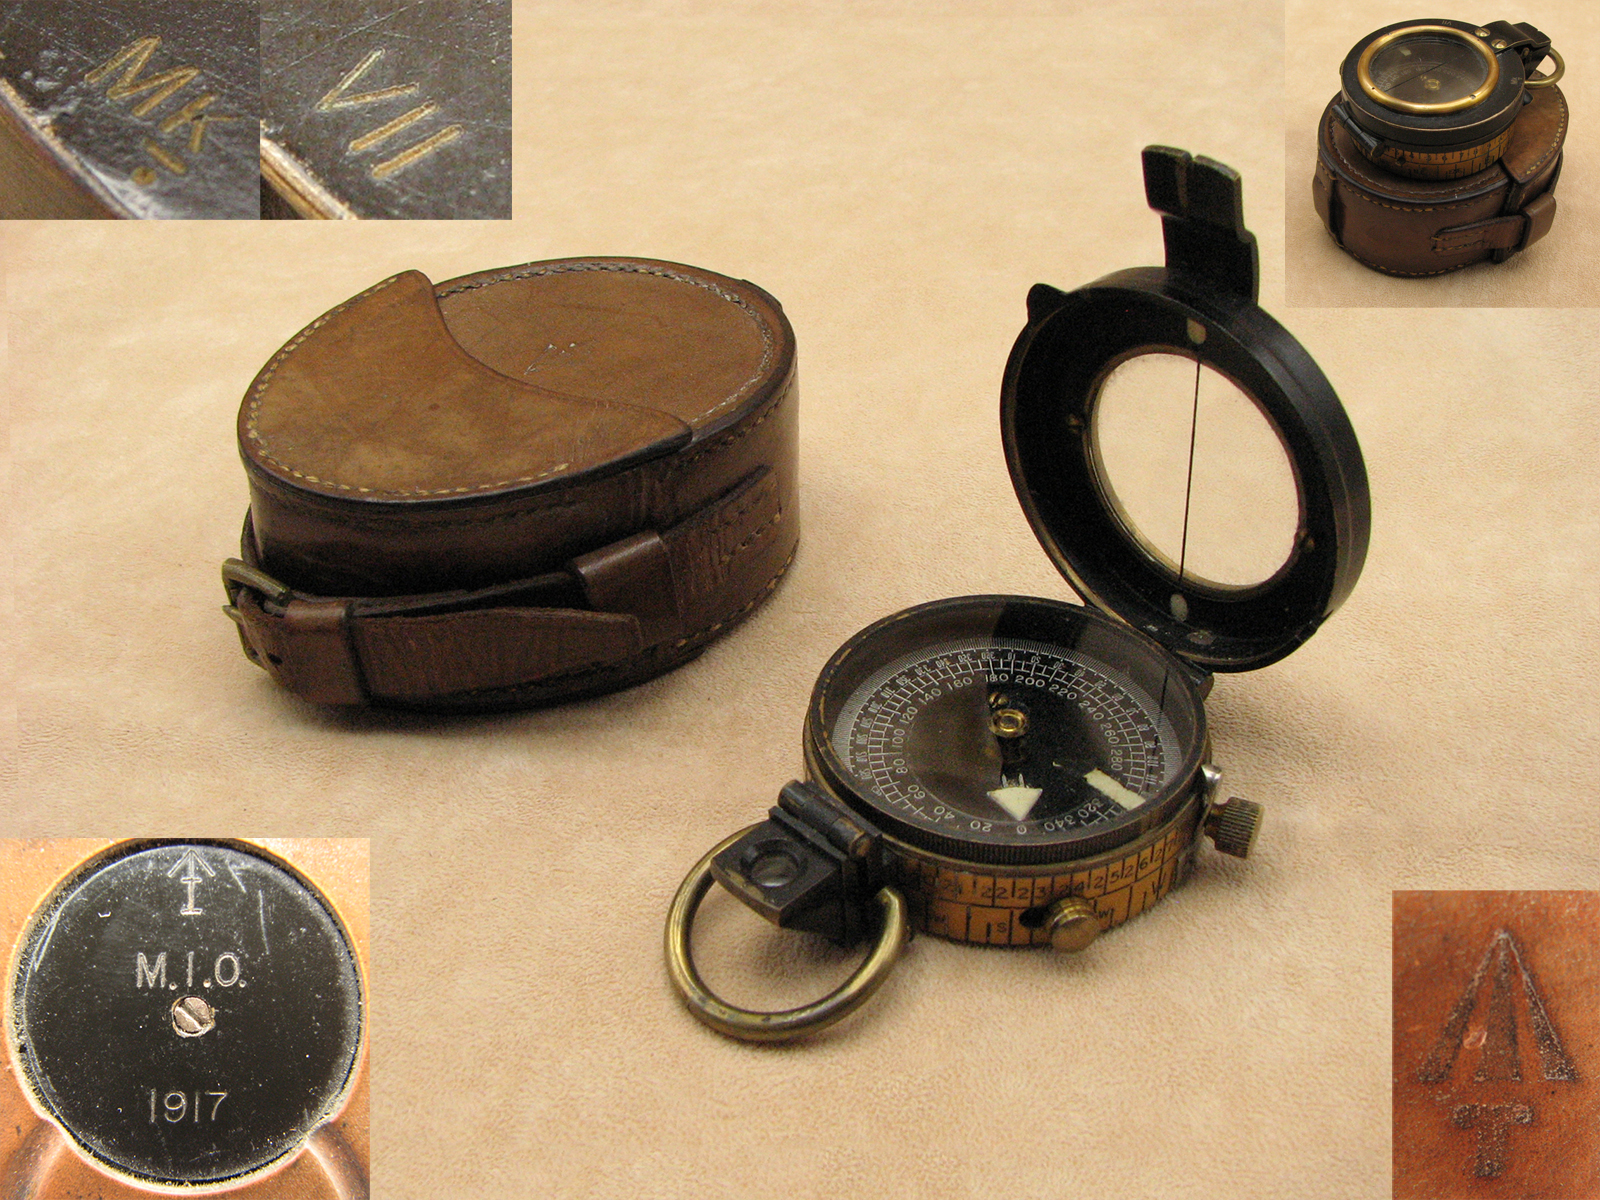 Rare WW1 Francis Barker Mk VII compass made for the Indian Army